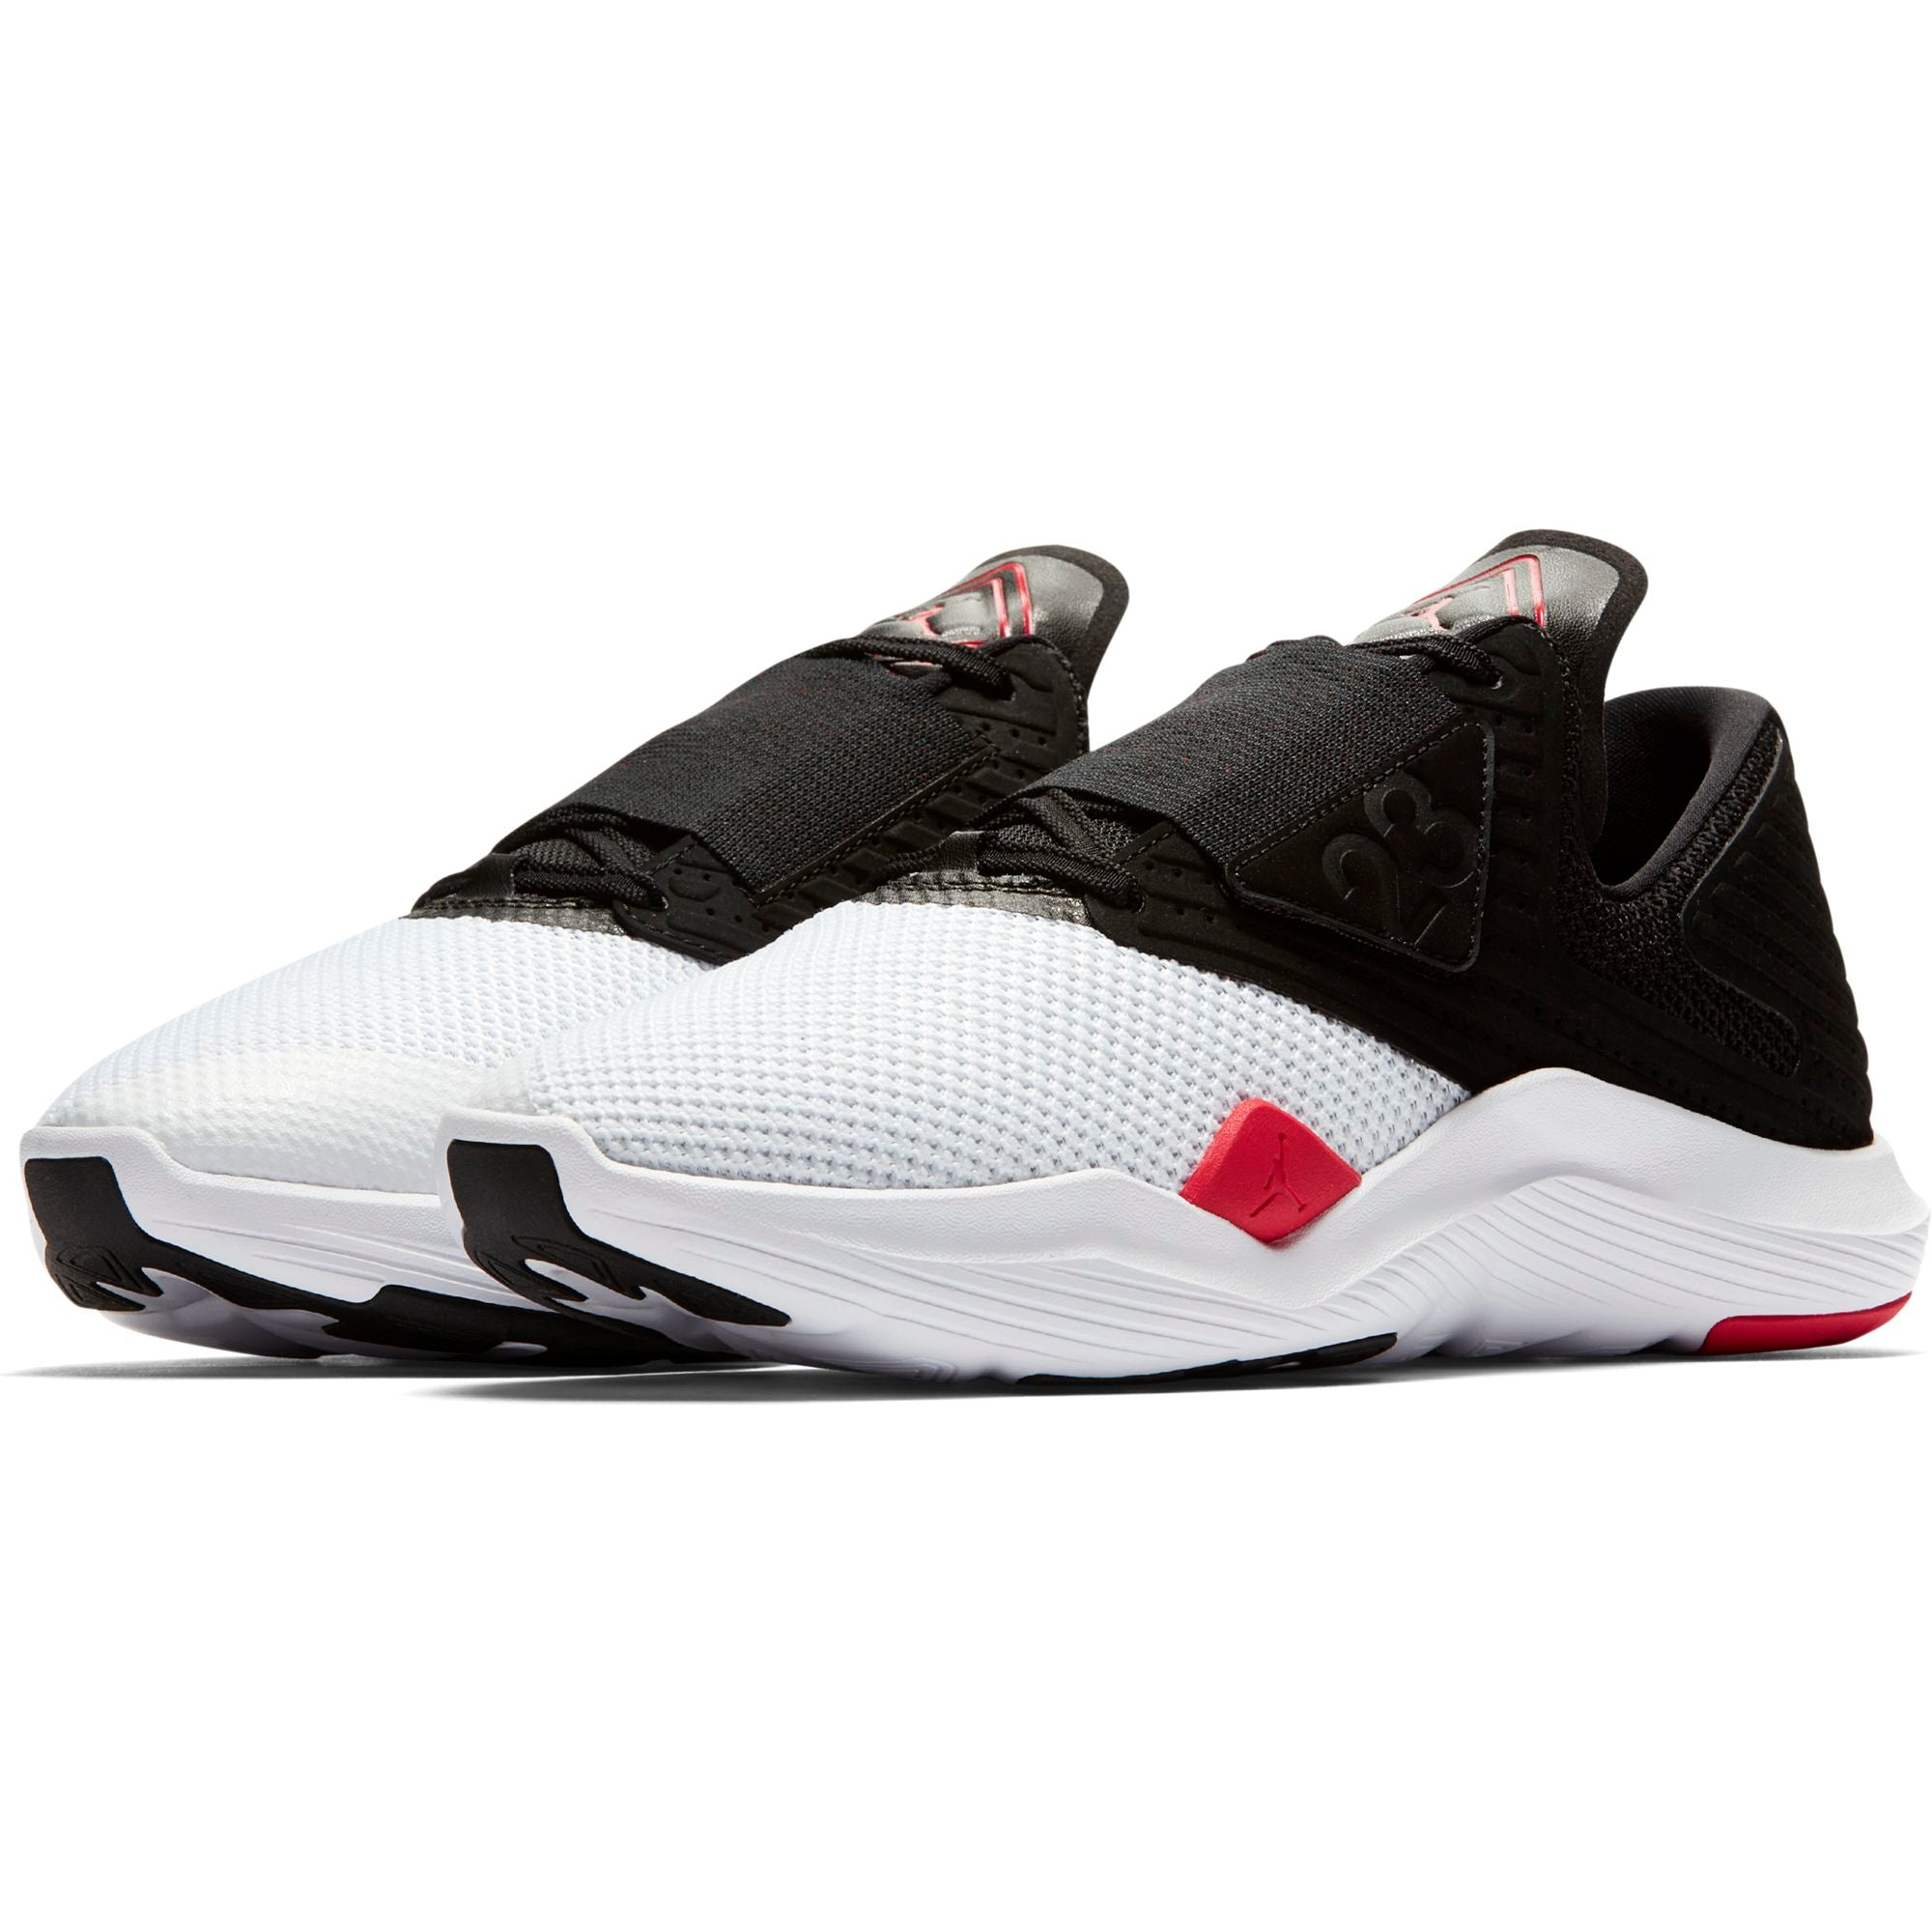 Nike Jordan Training Relentless Training Shoe - White/Black/University Red